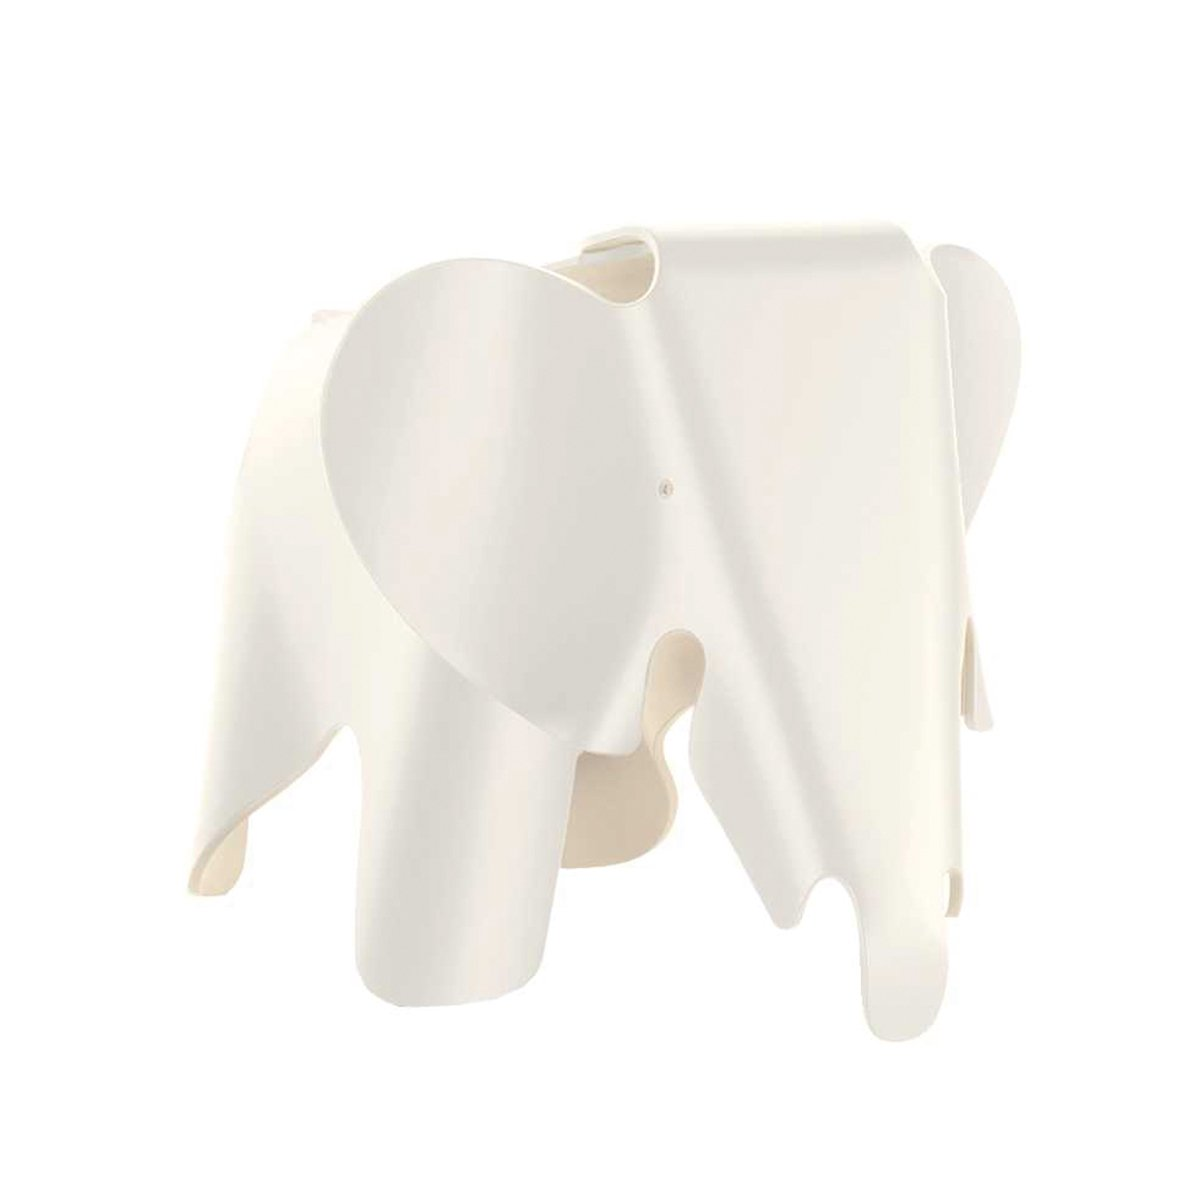 Vitra Eames Elephant Small White